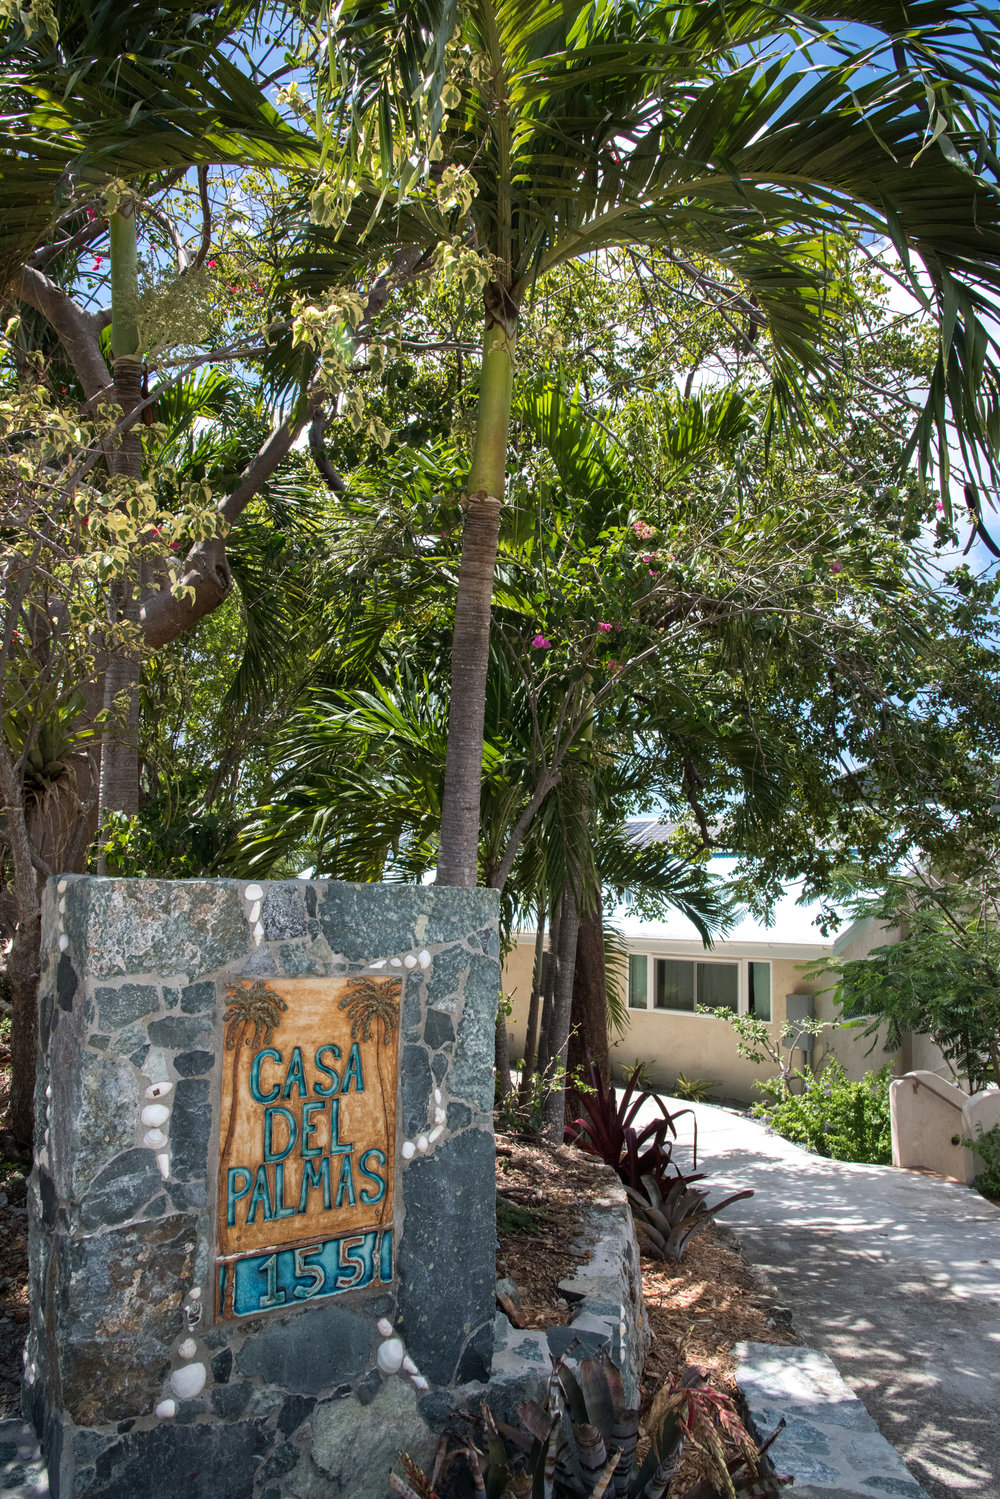 Casa Del Palmas Entry Way Sign